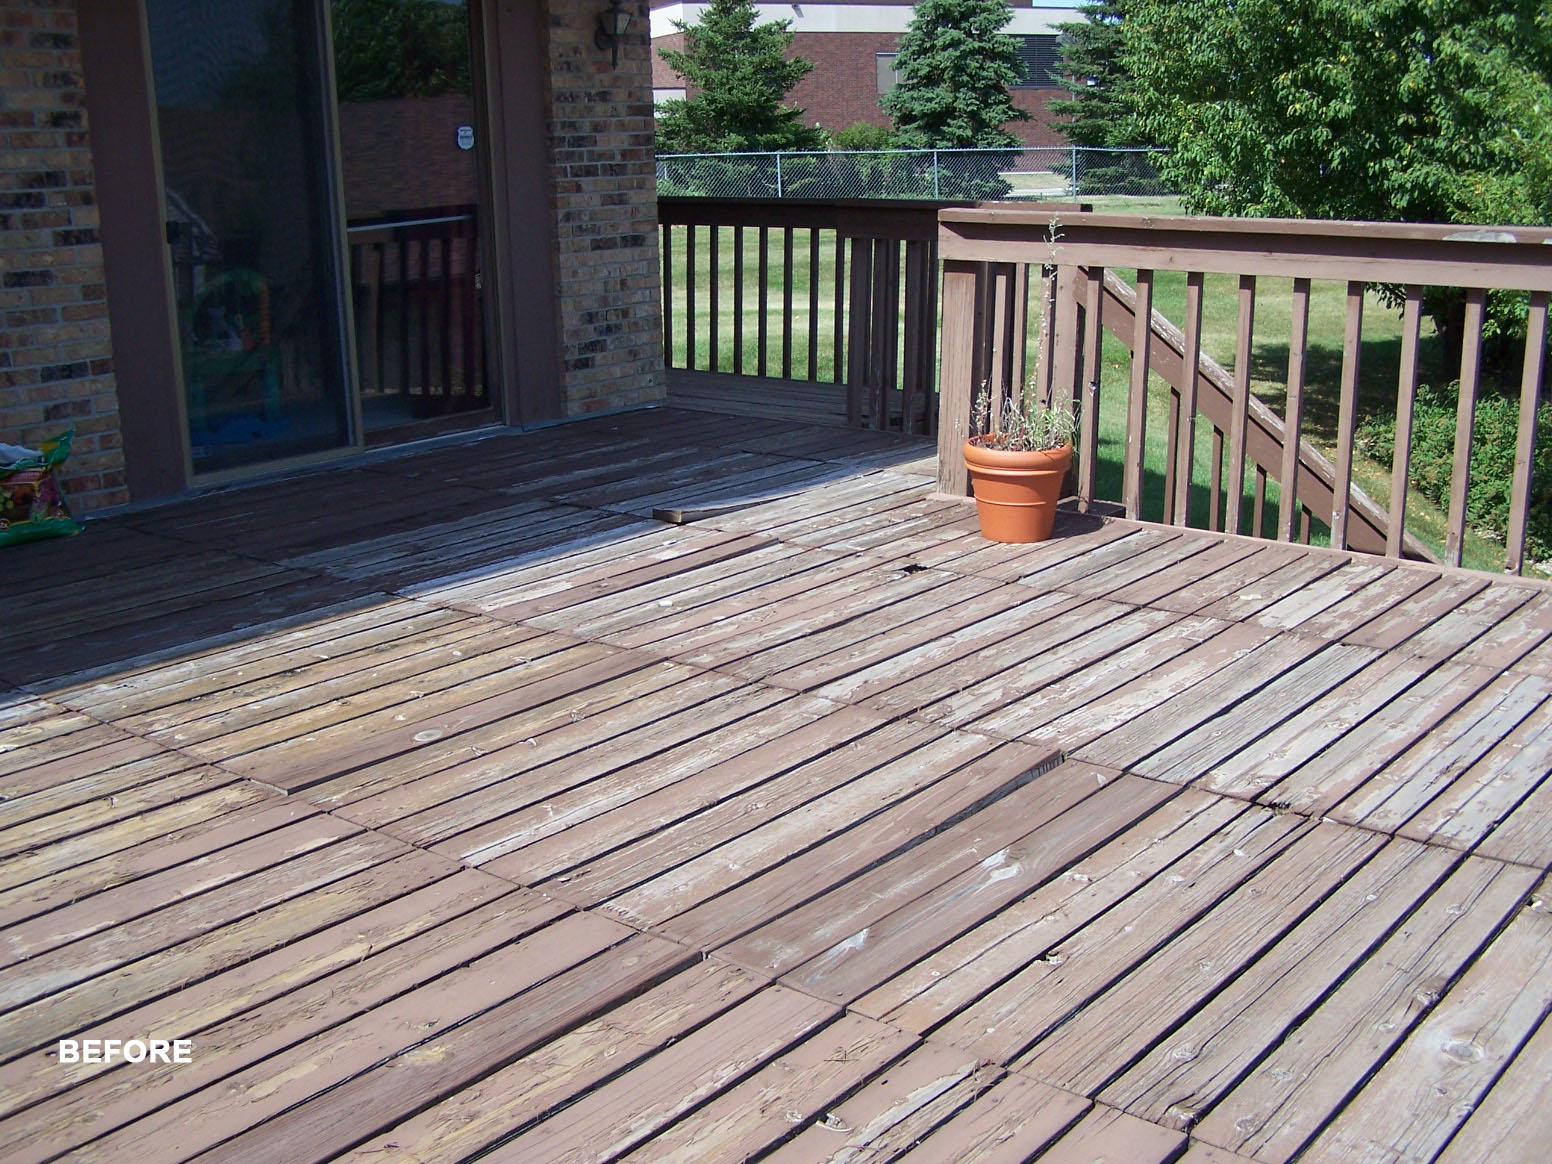 Deck Amp Railing Installation Commercial Decks Amp Railings